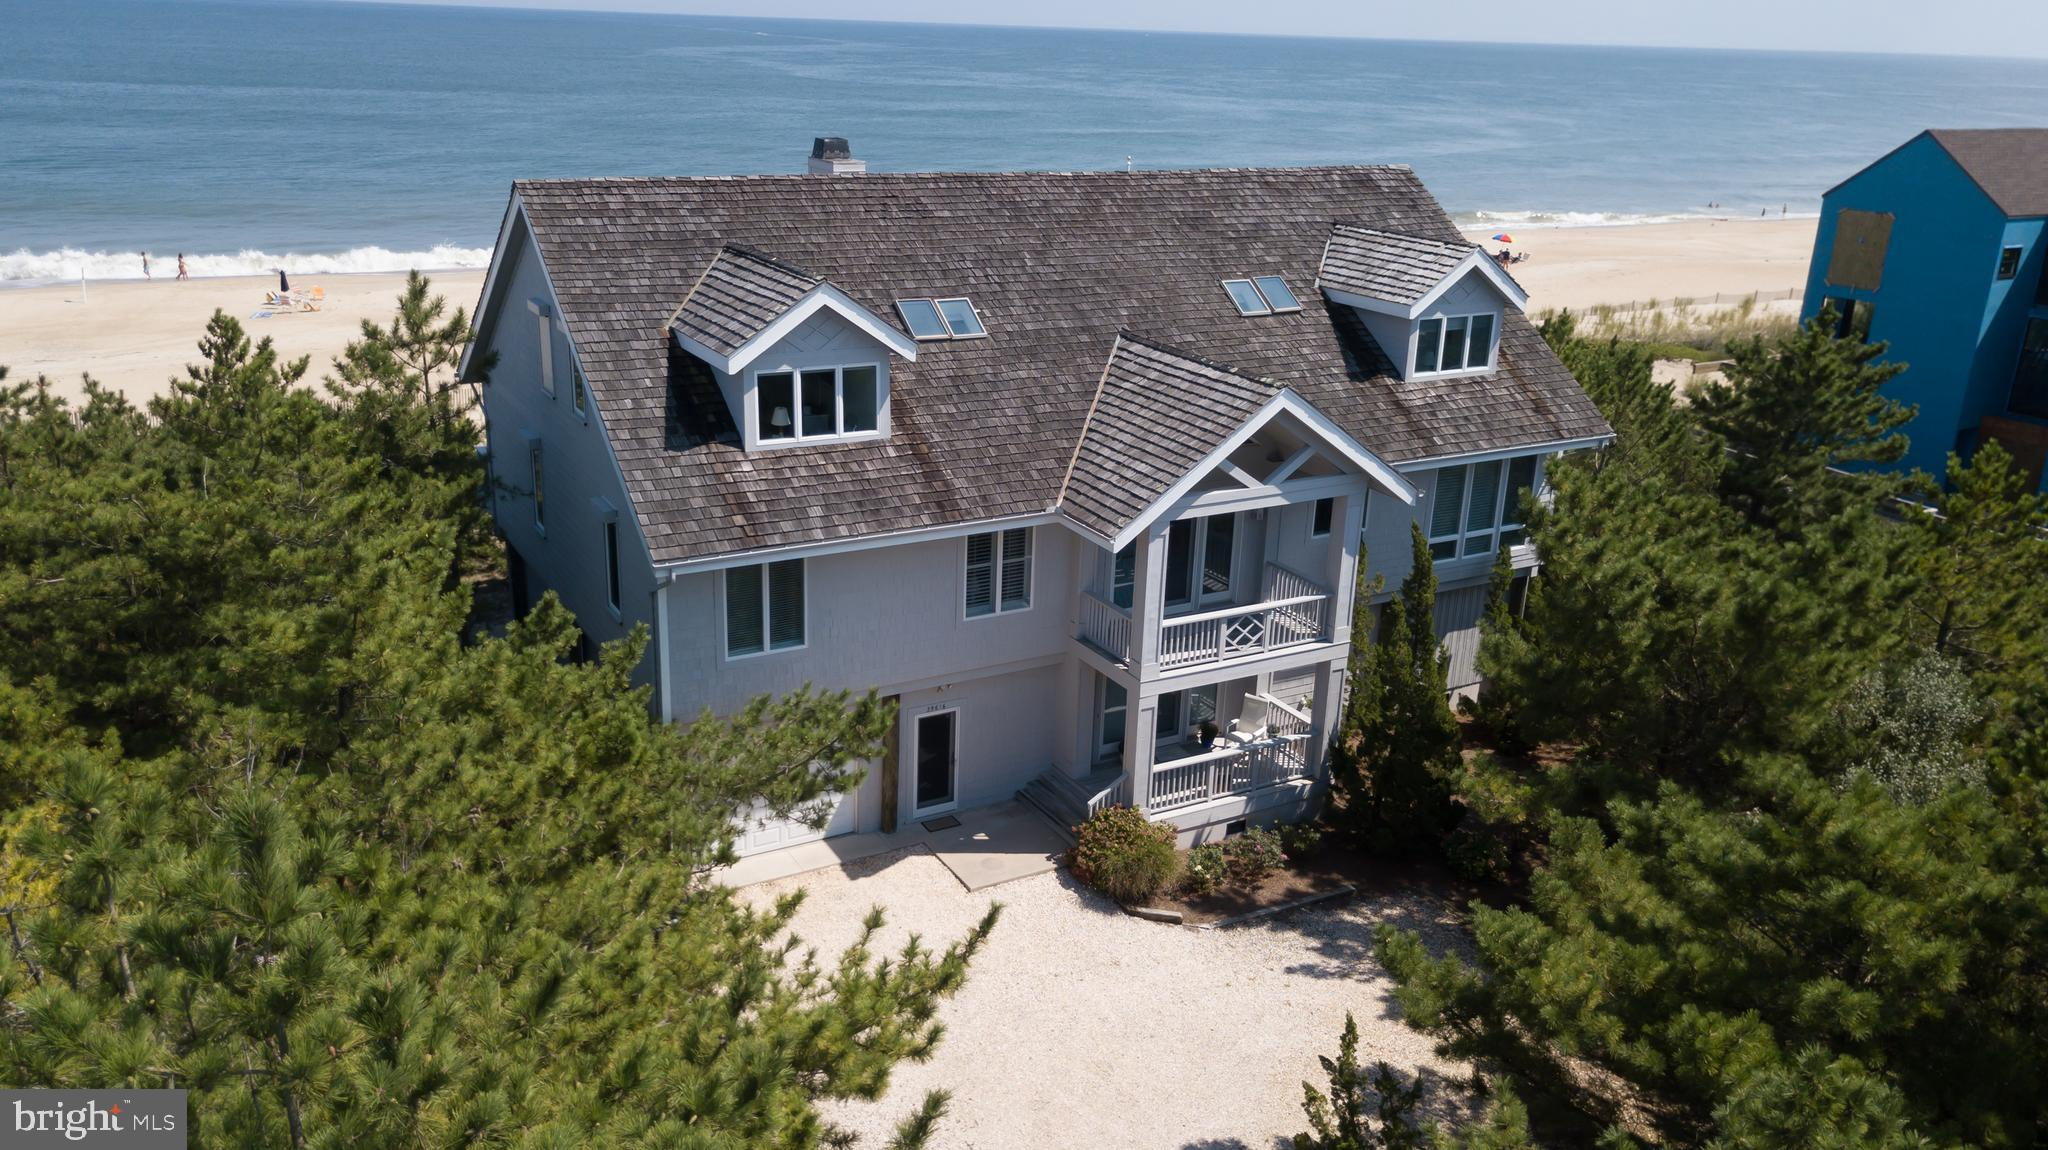 ANY OFFERS MUST BE SUBMITTED BY 4 PM ON SUNDAY, JUNE 12TH TO BE CONSIDERED.    Rare opportunity to purchase an oceanfront home with spectacular views on a double lot in North Bethany!  A 150' by 156' parcel on a private beach is a once in a lifetime possibility.  In addition, the  community  offers both ocean and bay access, tennis courts, and a marina. It is evident to see the care and diligence that has gone into this residence.  The home features timeless architecture, with exposed beams, hardwood floors, soaring ceilings, ample space for family and friends to enjoy all the beach has to offer. The deck off the living room is large enough to accommodate all the furniture and grills to enjoy the panoramic ocean views. There are two master suites, one on the third level and the other on 2nd level. The open floorplan allows for continual  appreciation of the Atlantic Ocean from the living, dining, or kitchen areas, as well as on the  screened porch or  enclosed den off the kitchen.  The lower level offers its own suite , with a separate bathroom, laundry room , access to the  outside showers, and  beach walkway, as well as an entrance to the spacious garage and storage area.  The elevator goes to all floors in the home, including the garage level.